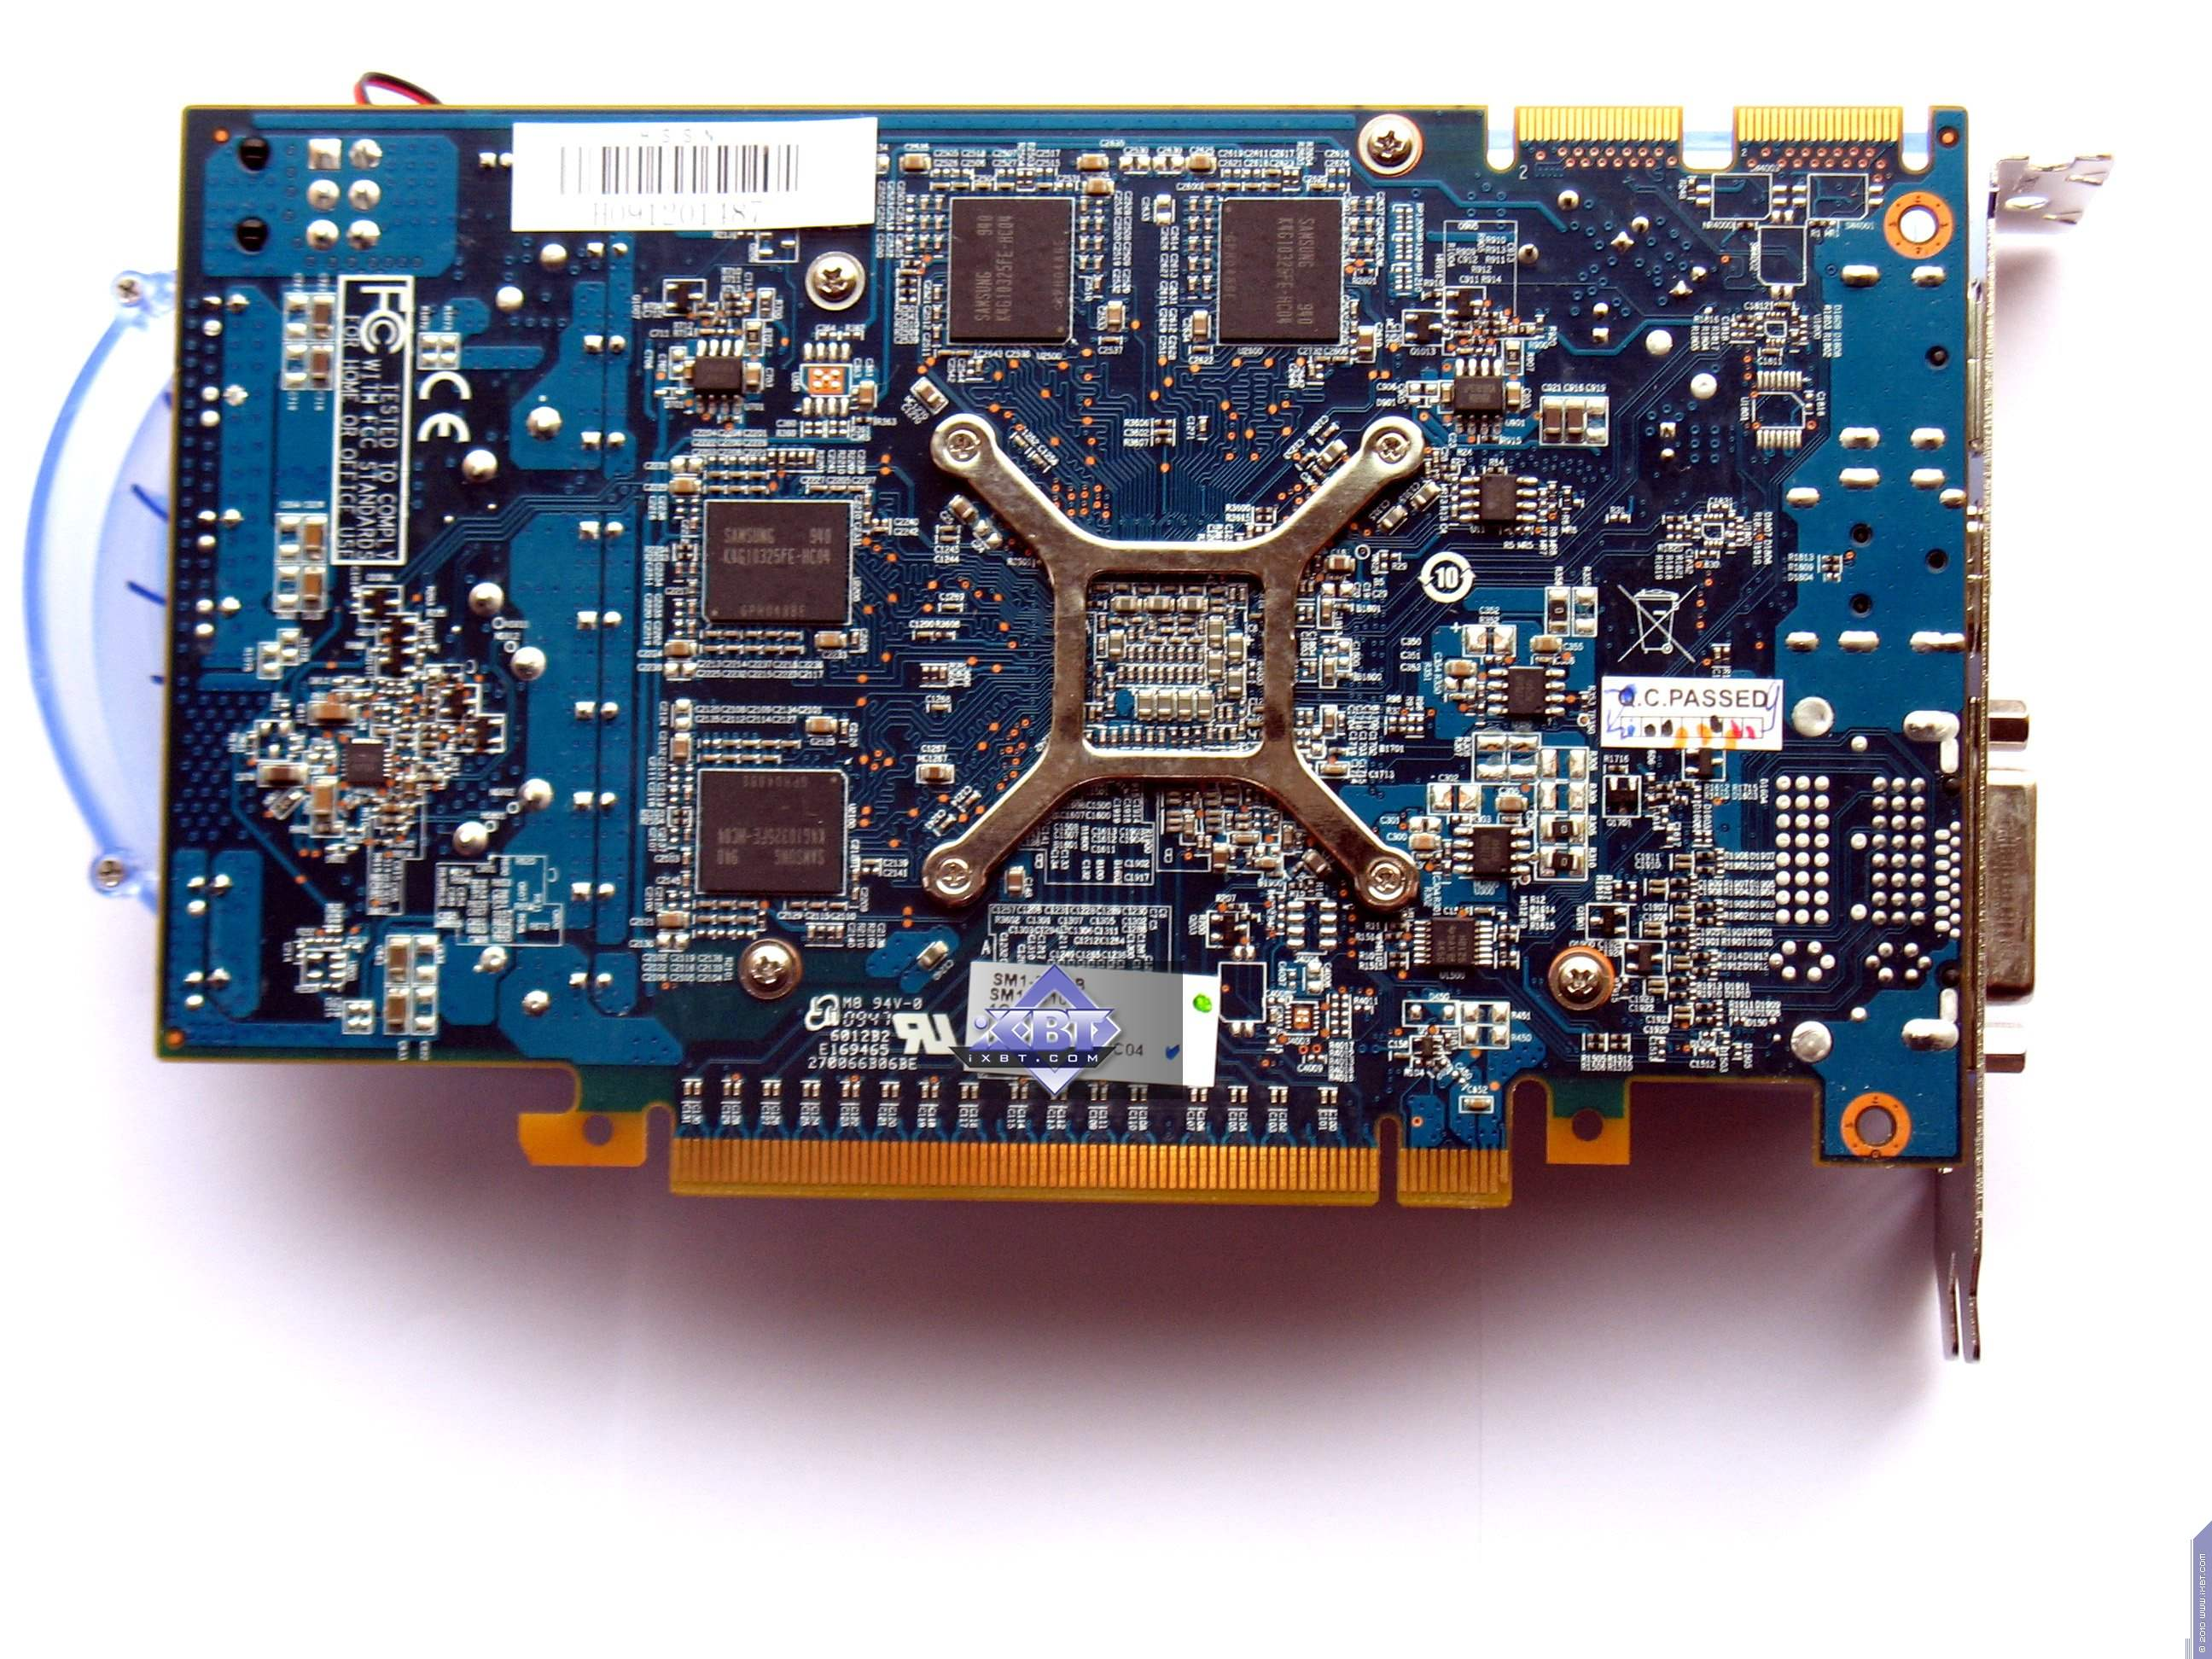 overclocking xfx ati bet at home Promo-Codes 2013 bet at home Quidco 5770